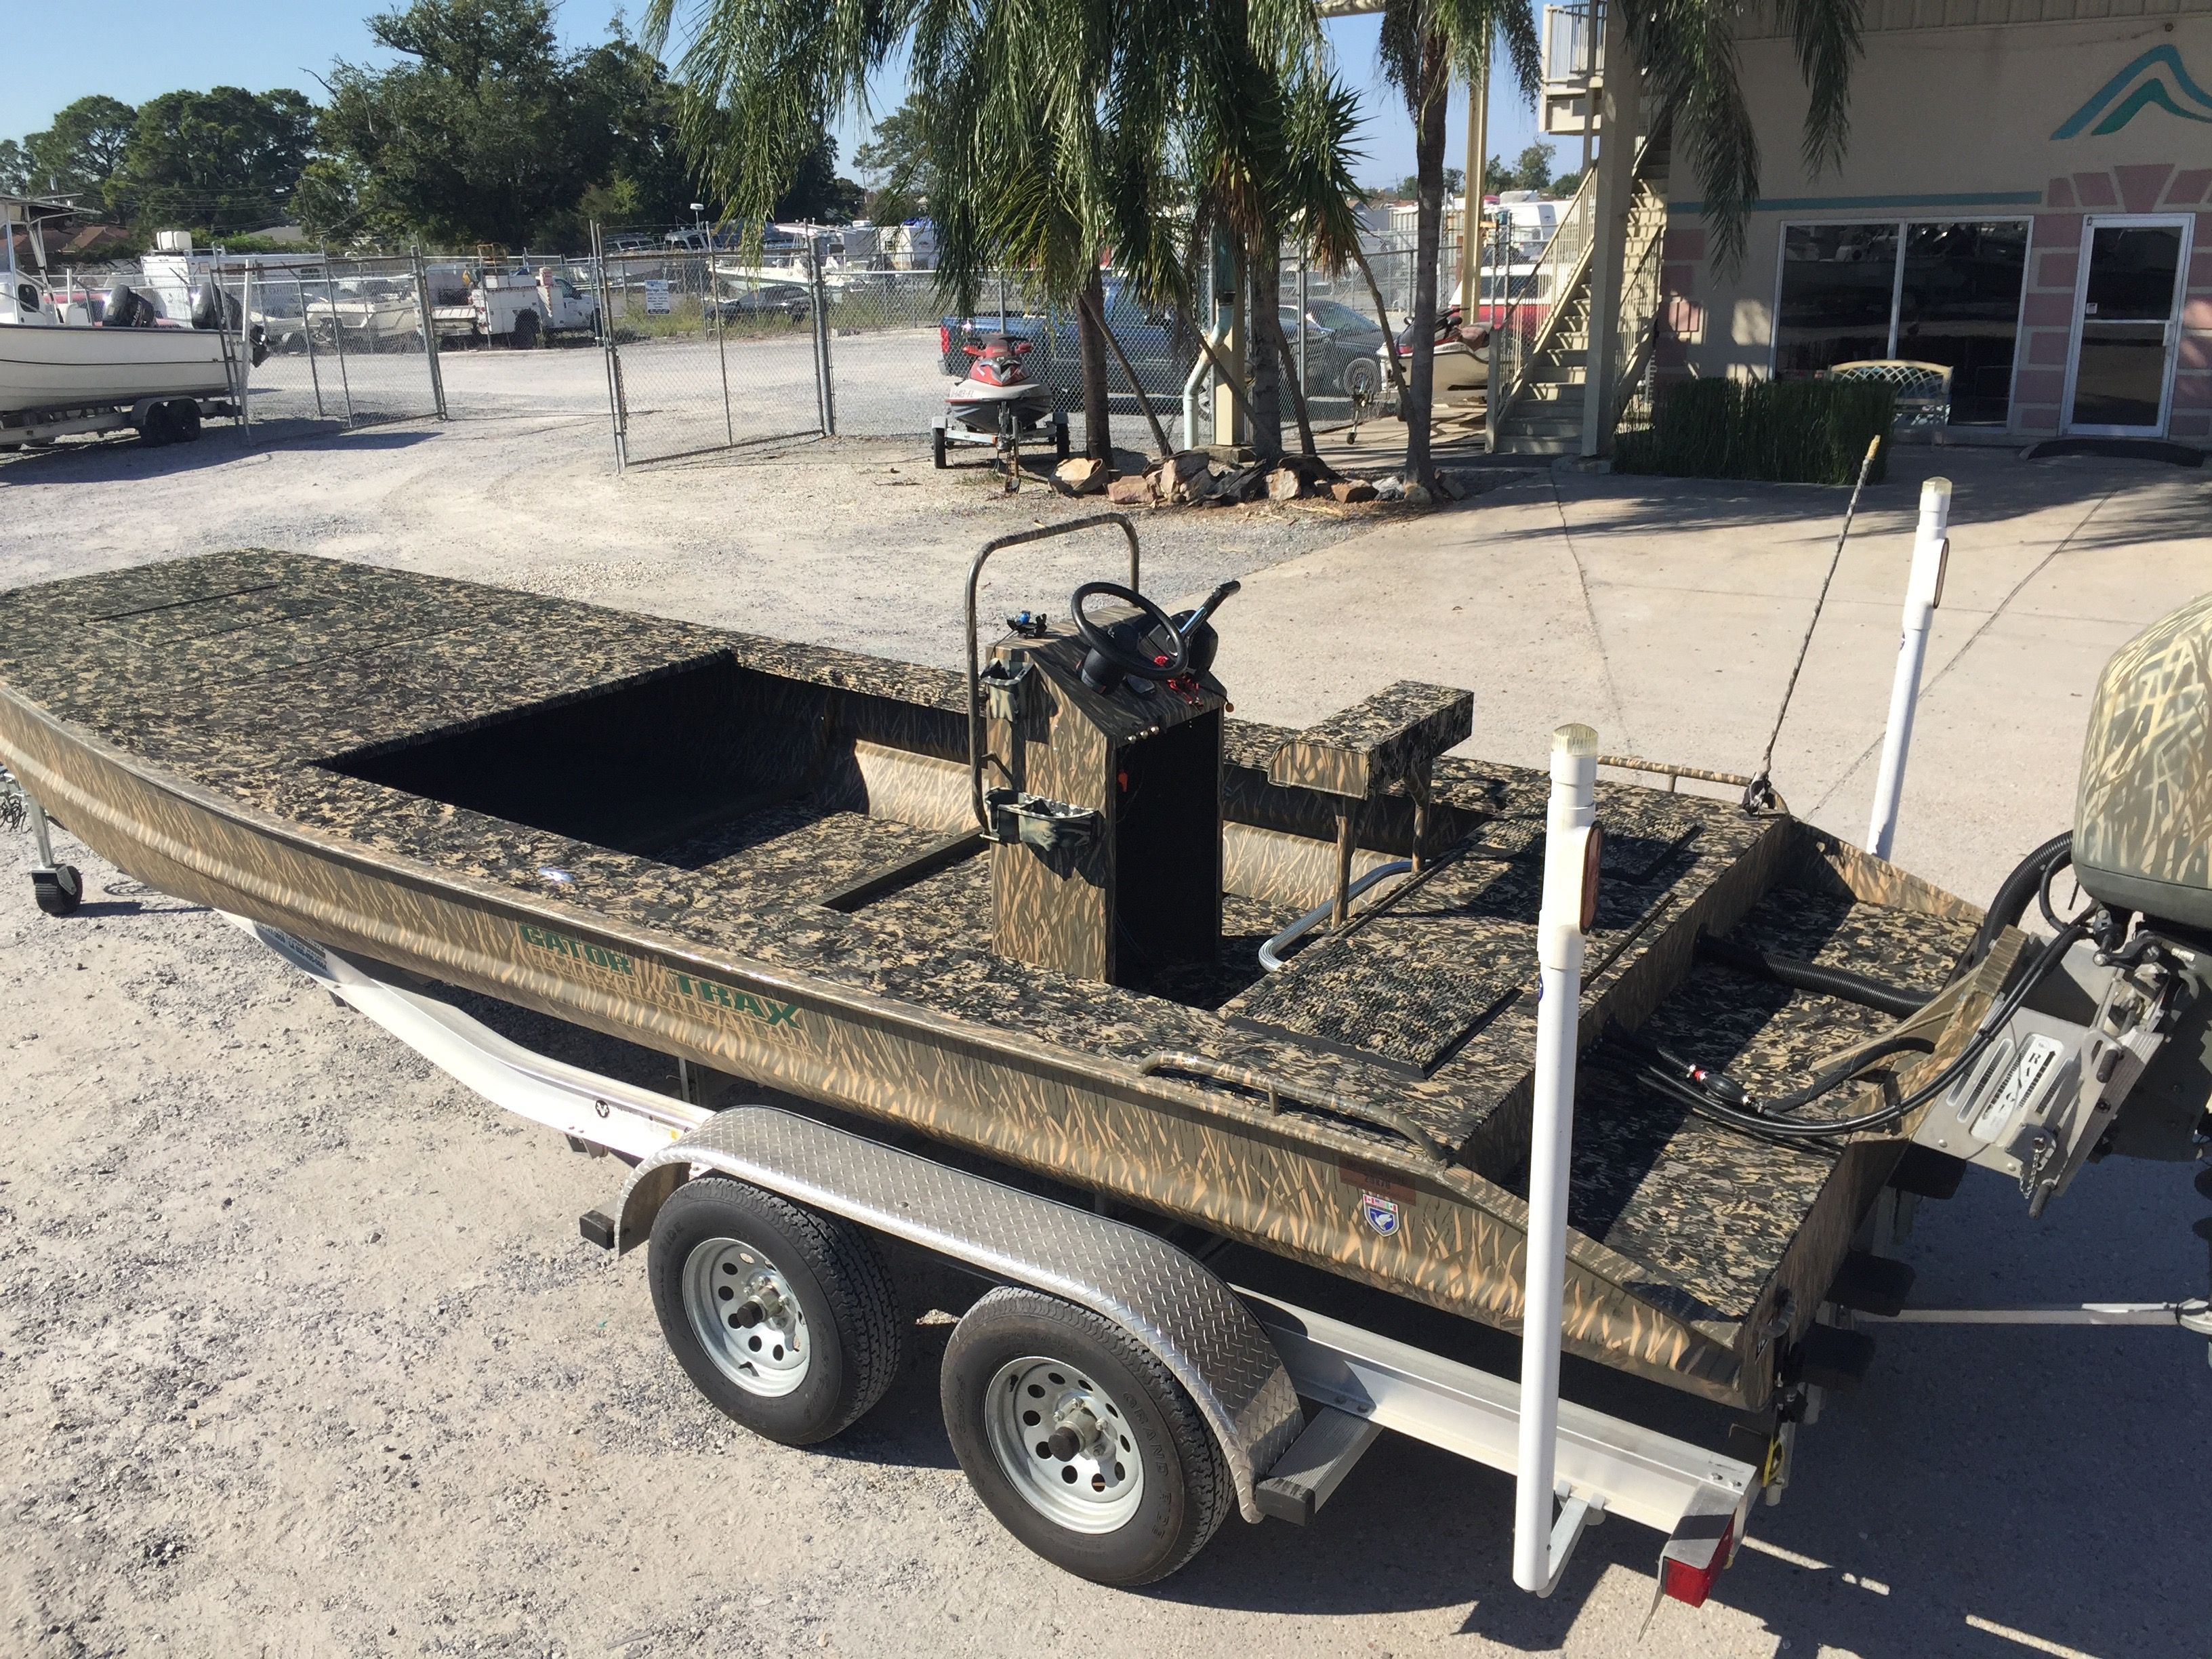 2015 Gator Trax 20X70 F250 Gone The Hull Truth Boating and